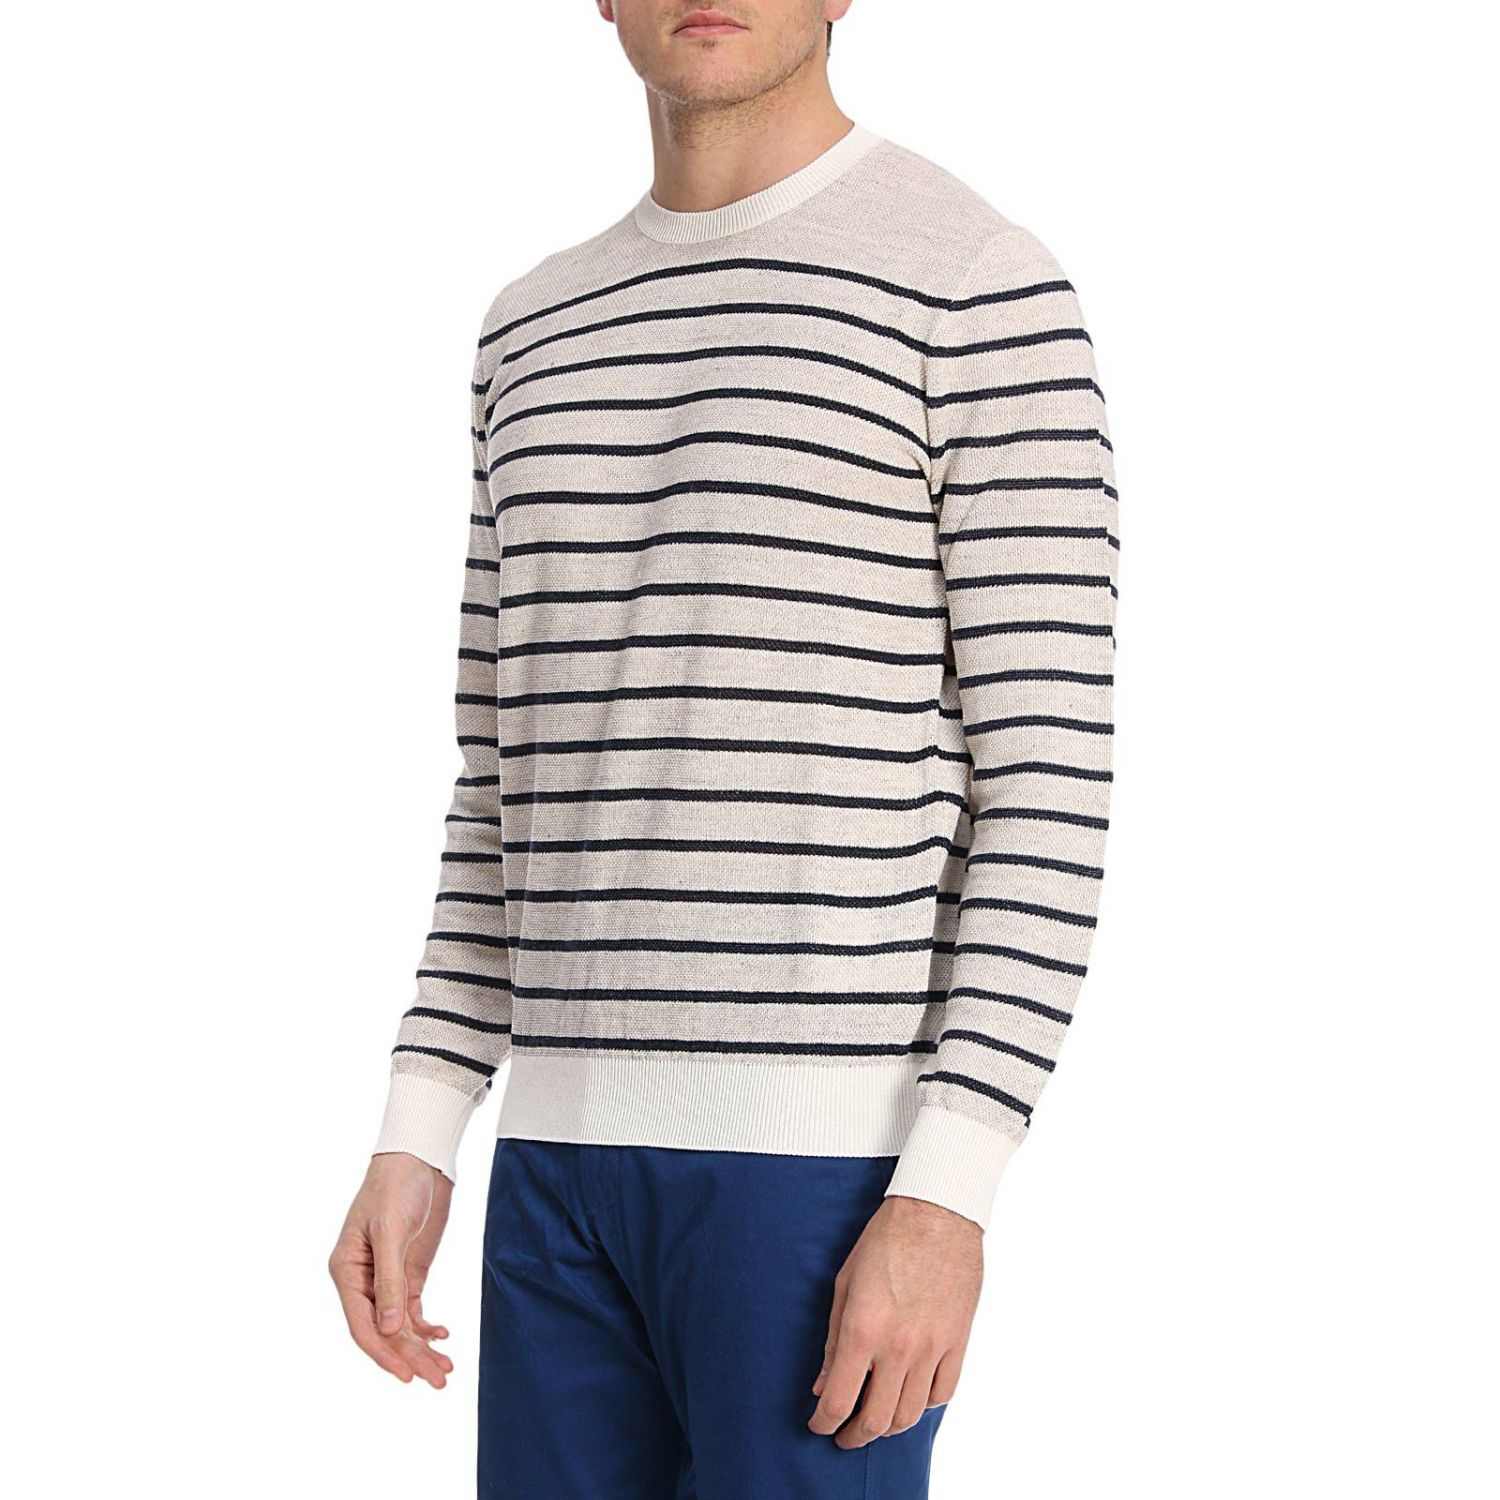 Sweater Tods: Sweater men Tod's yellow cream 2